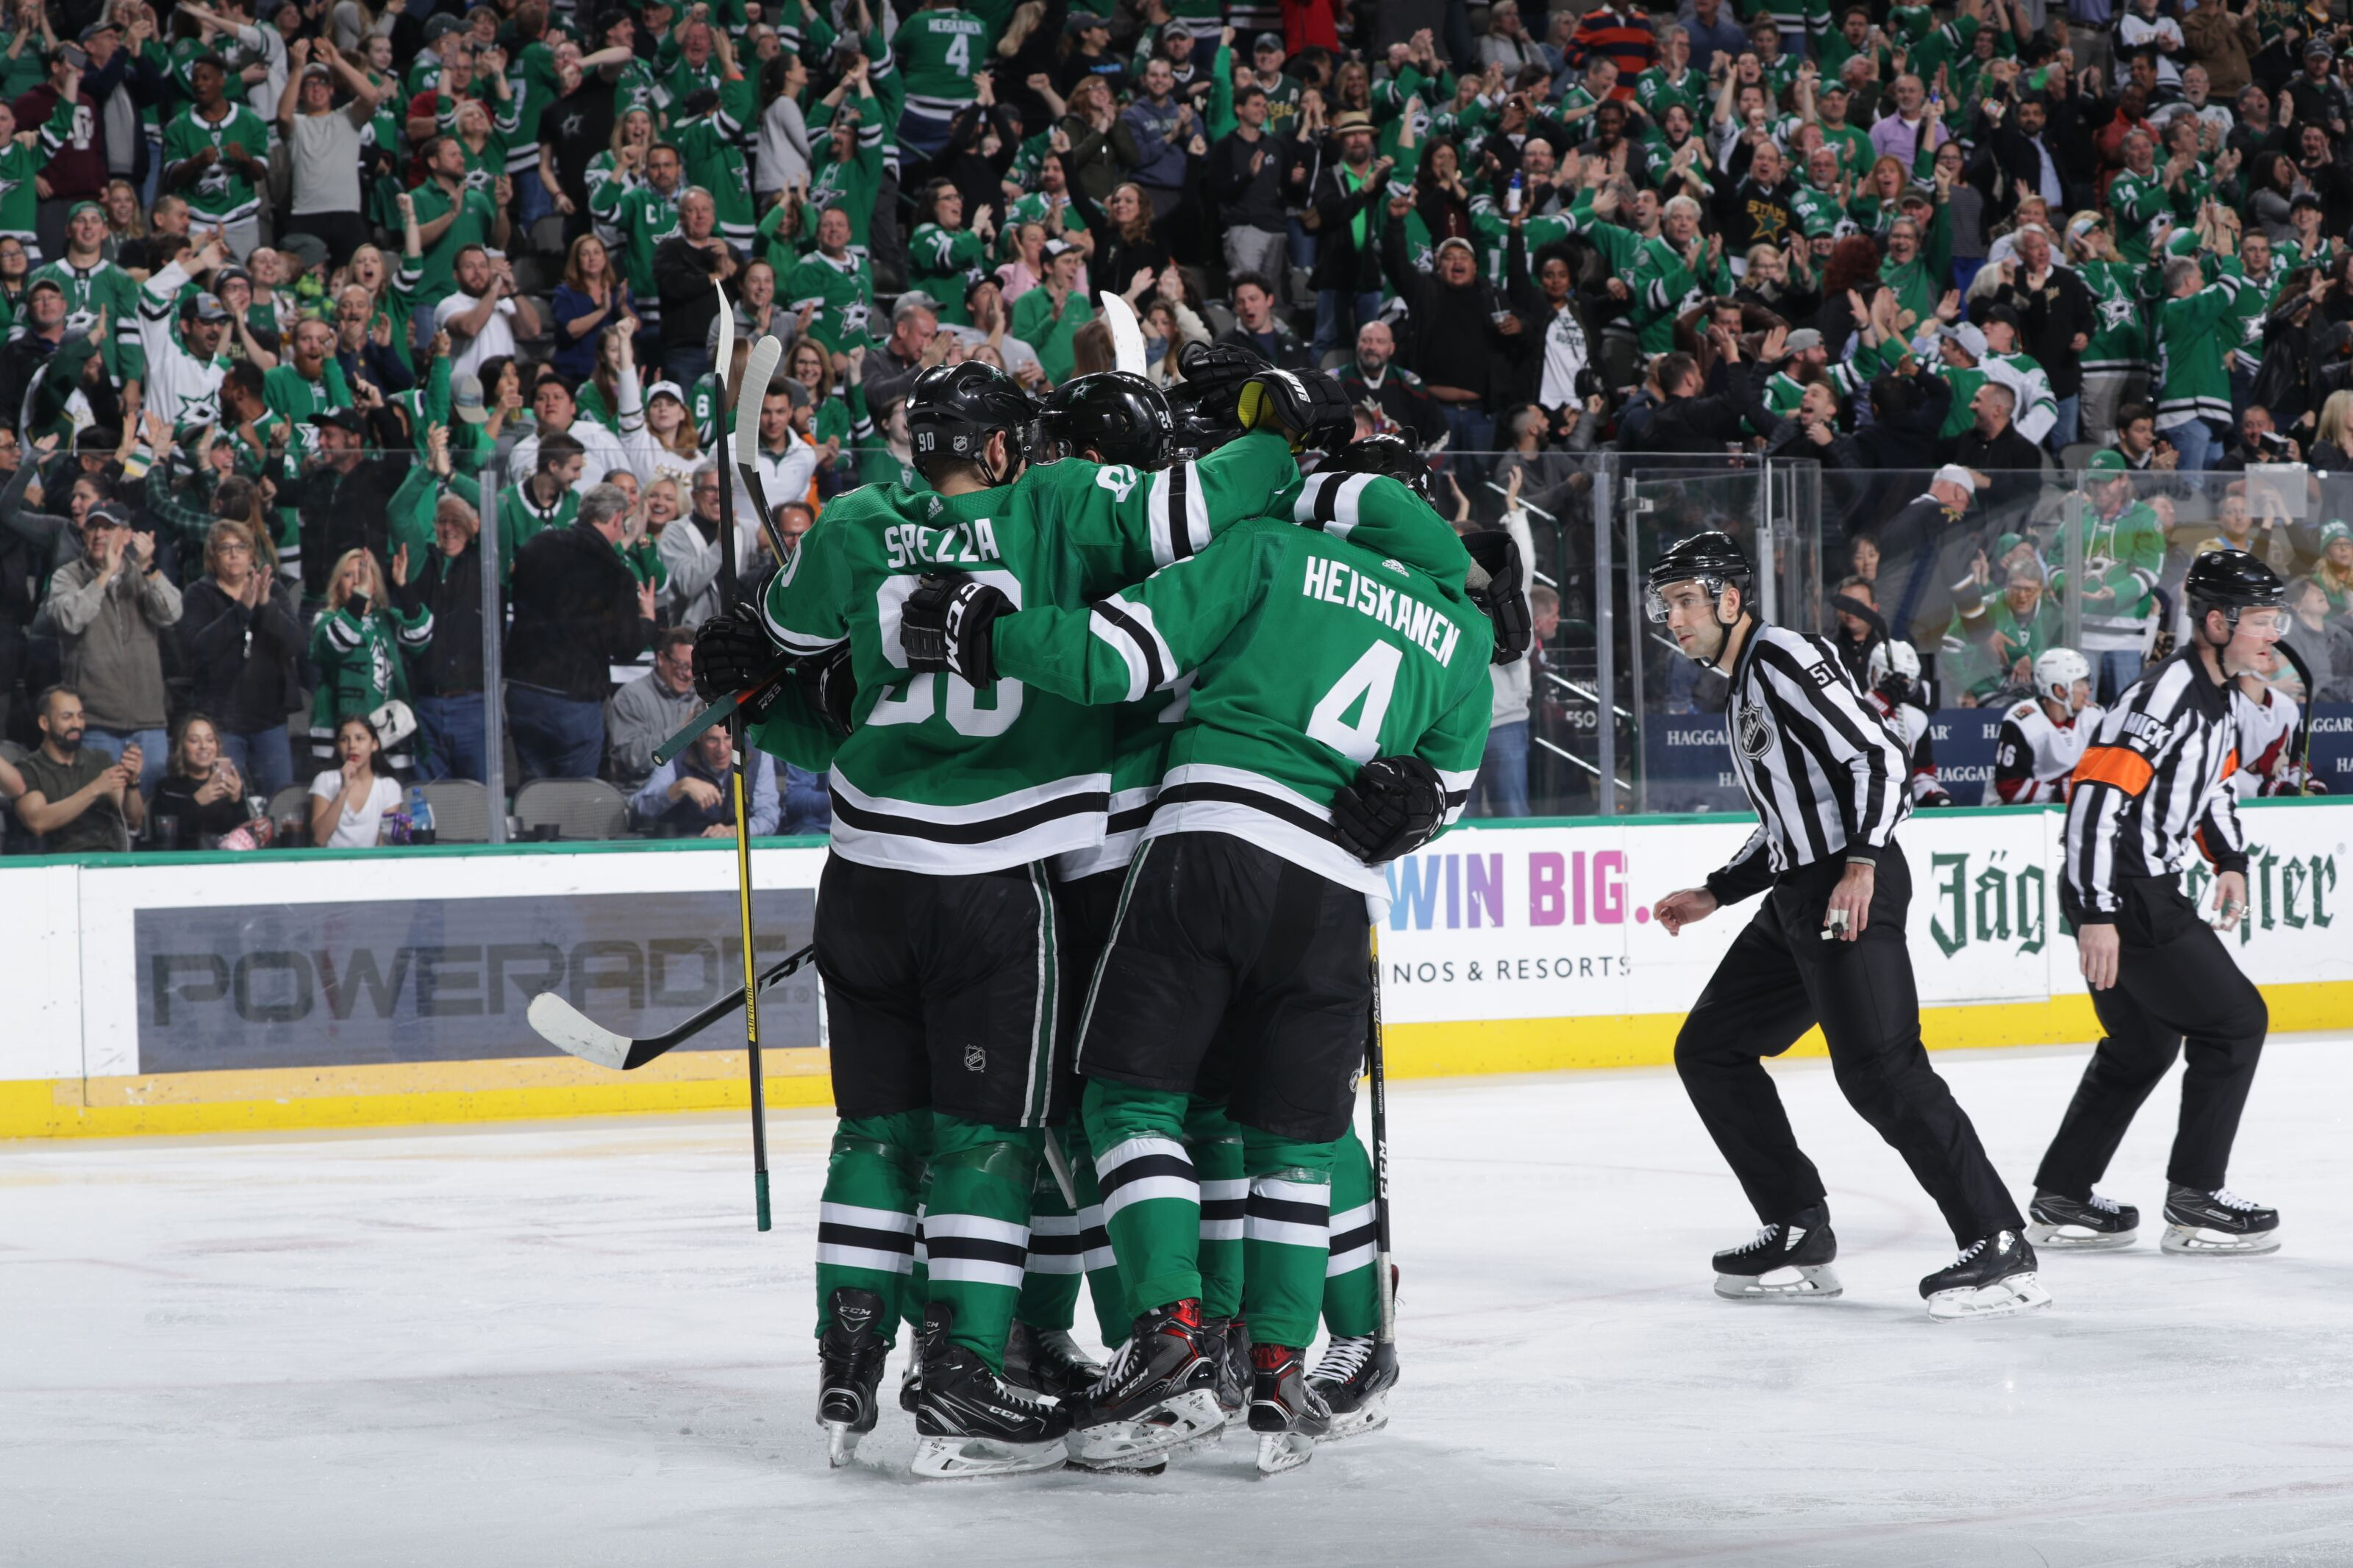 Dallas Stars  Challenging Homestand Offers Opportunity To Rebound 7cc1c1d89